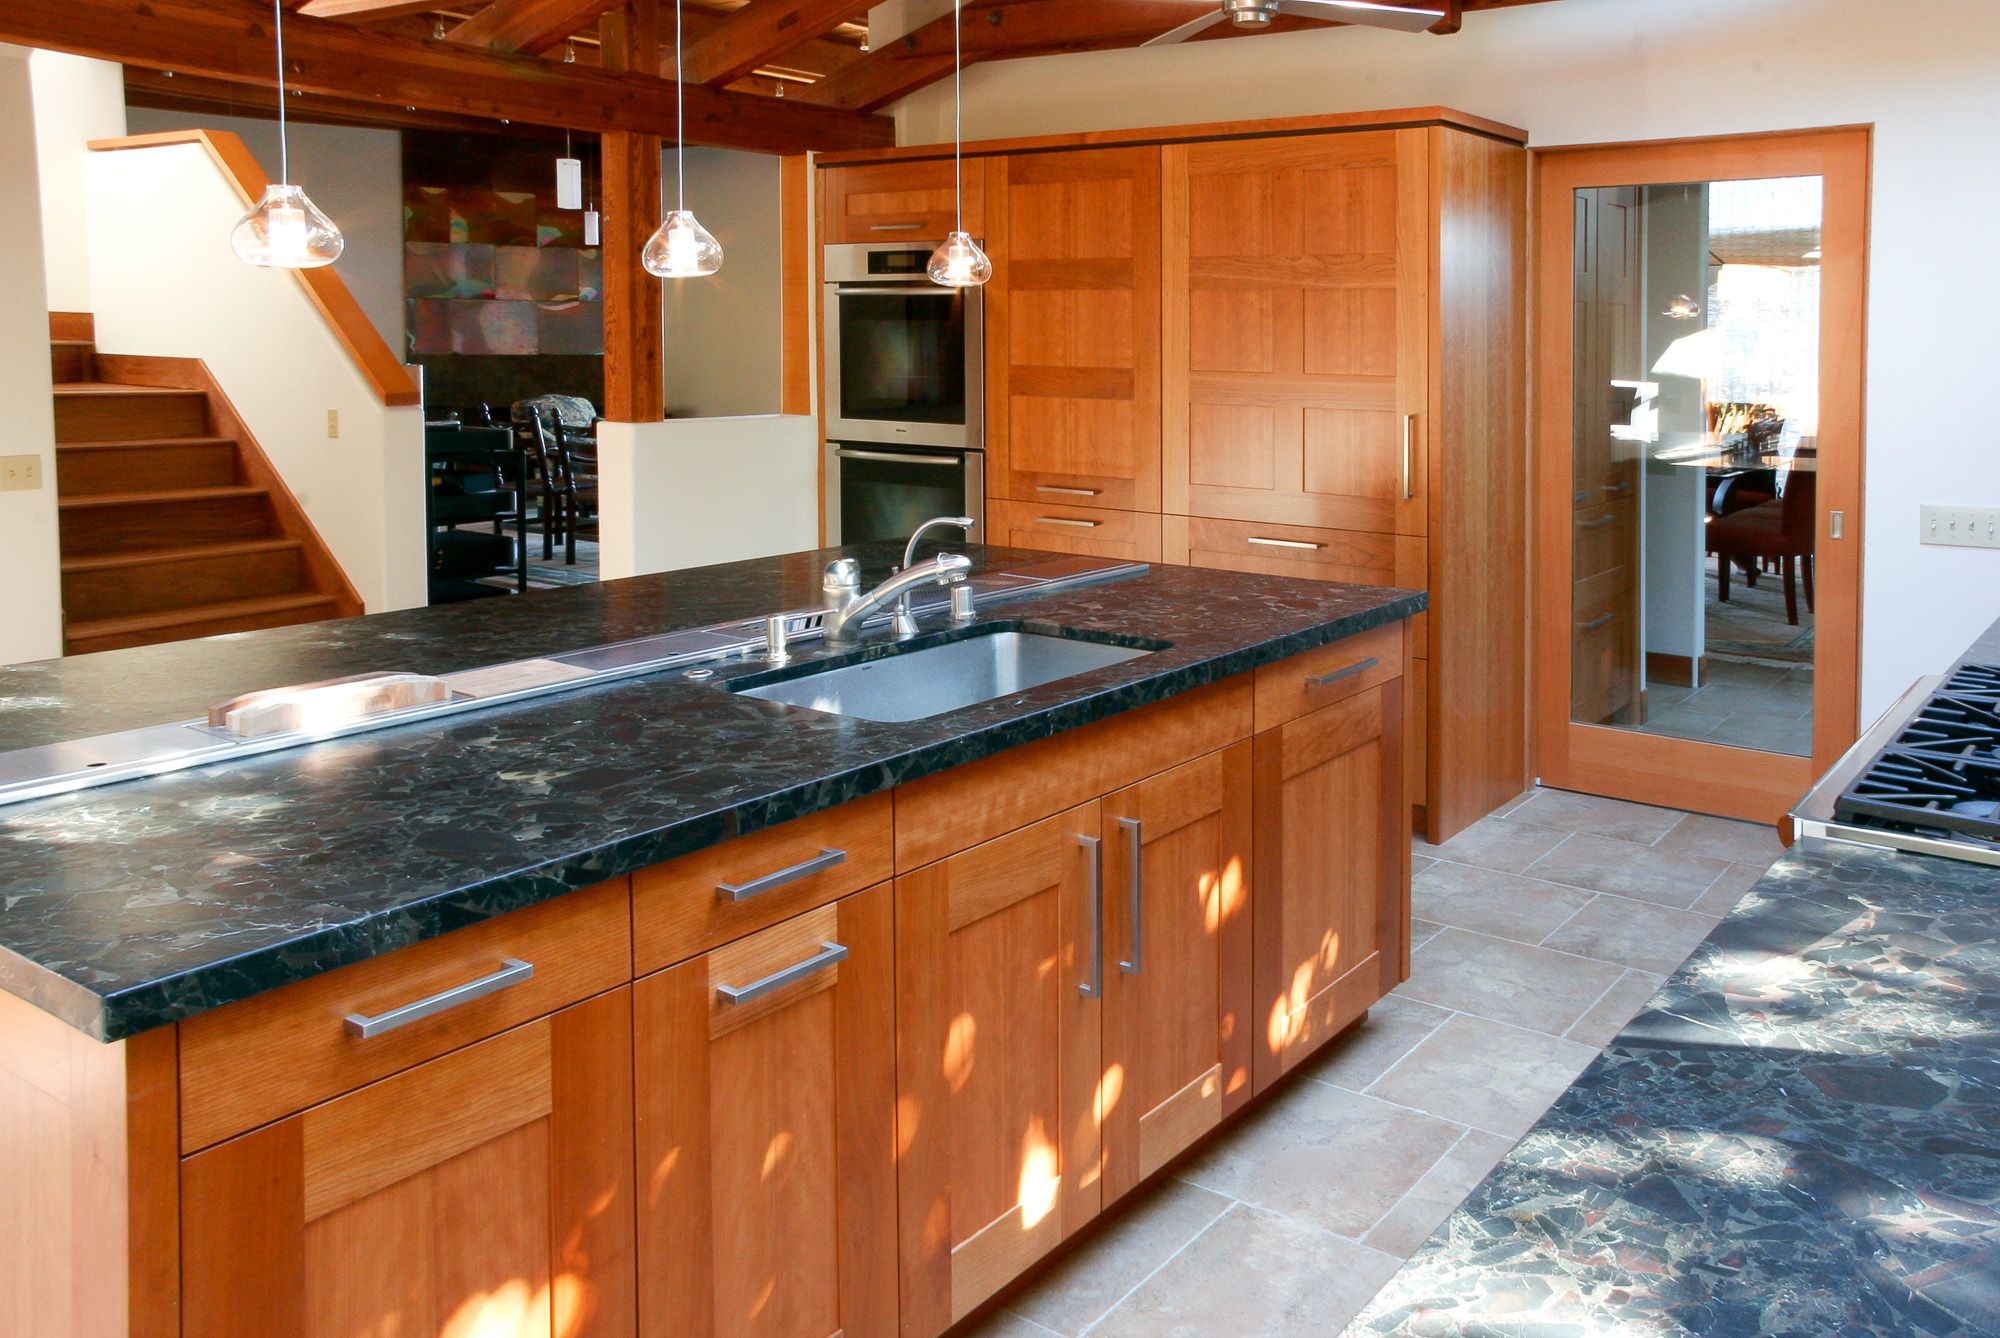 Solid Cherry Wood Kitchen Cabinet Wood Kitchen Cabinets Cherry Wood Kitchen Cabinets Cherry Wood Kitchens